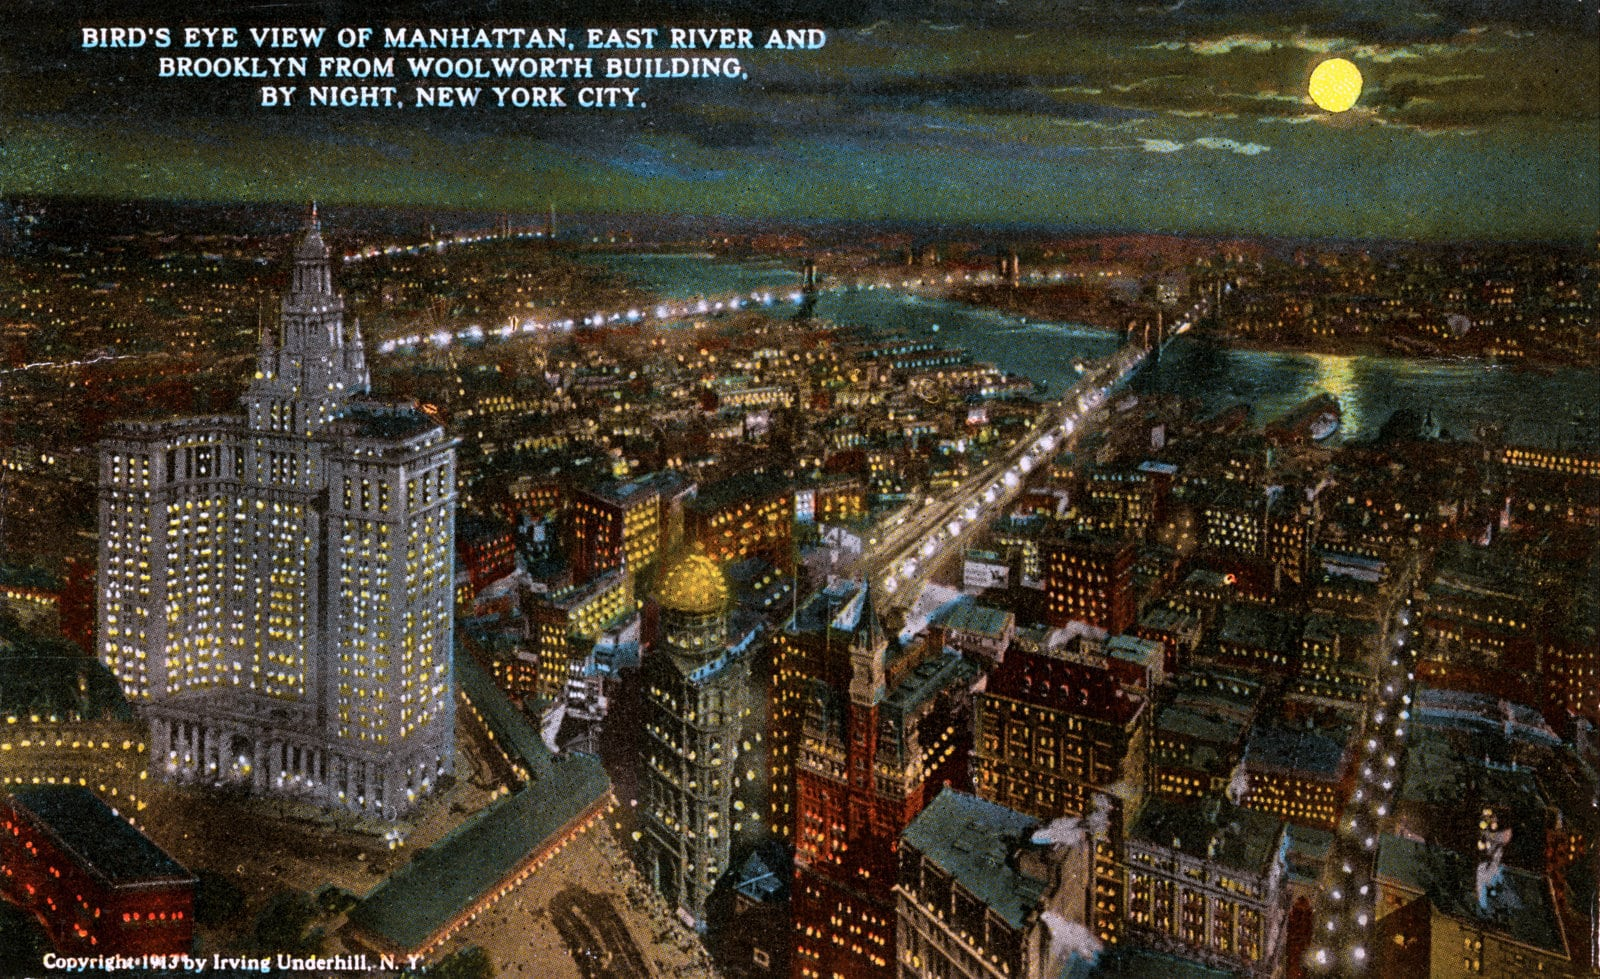 Bird's eye view of Manhattan, East River and Brooklyn from Woolworth Building, by night, New York City (1913)